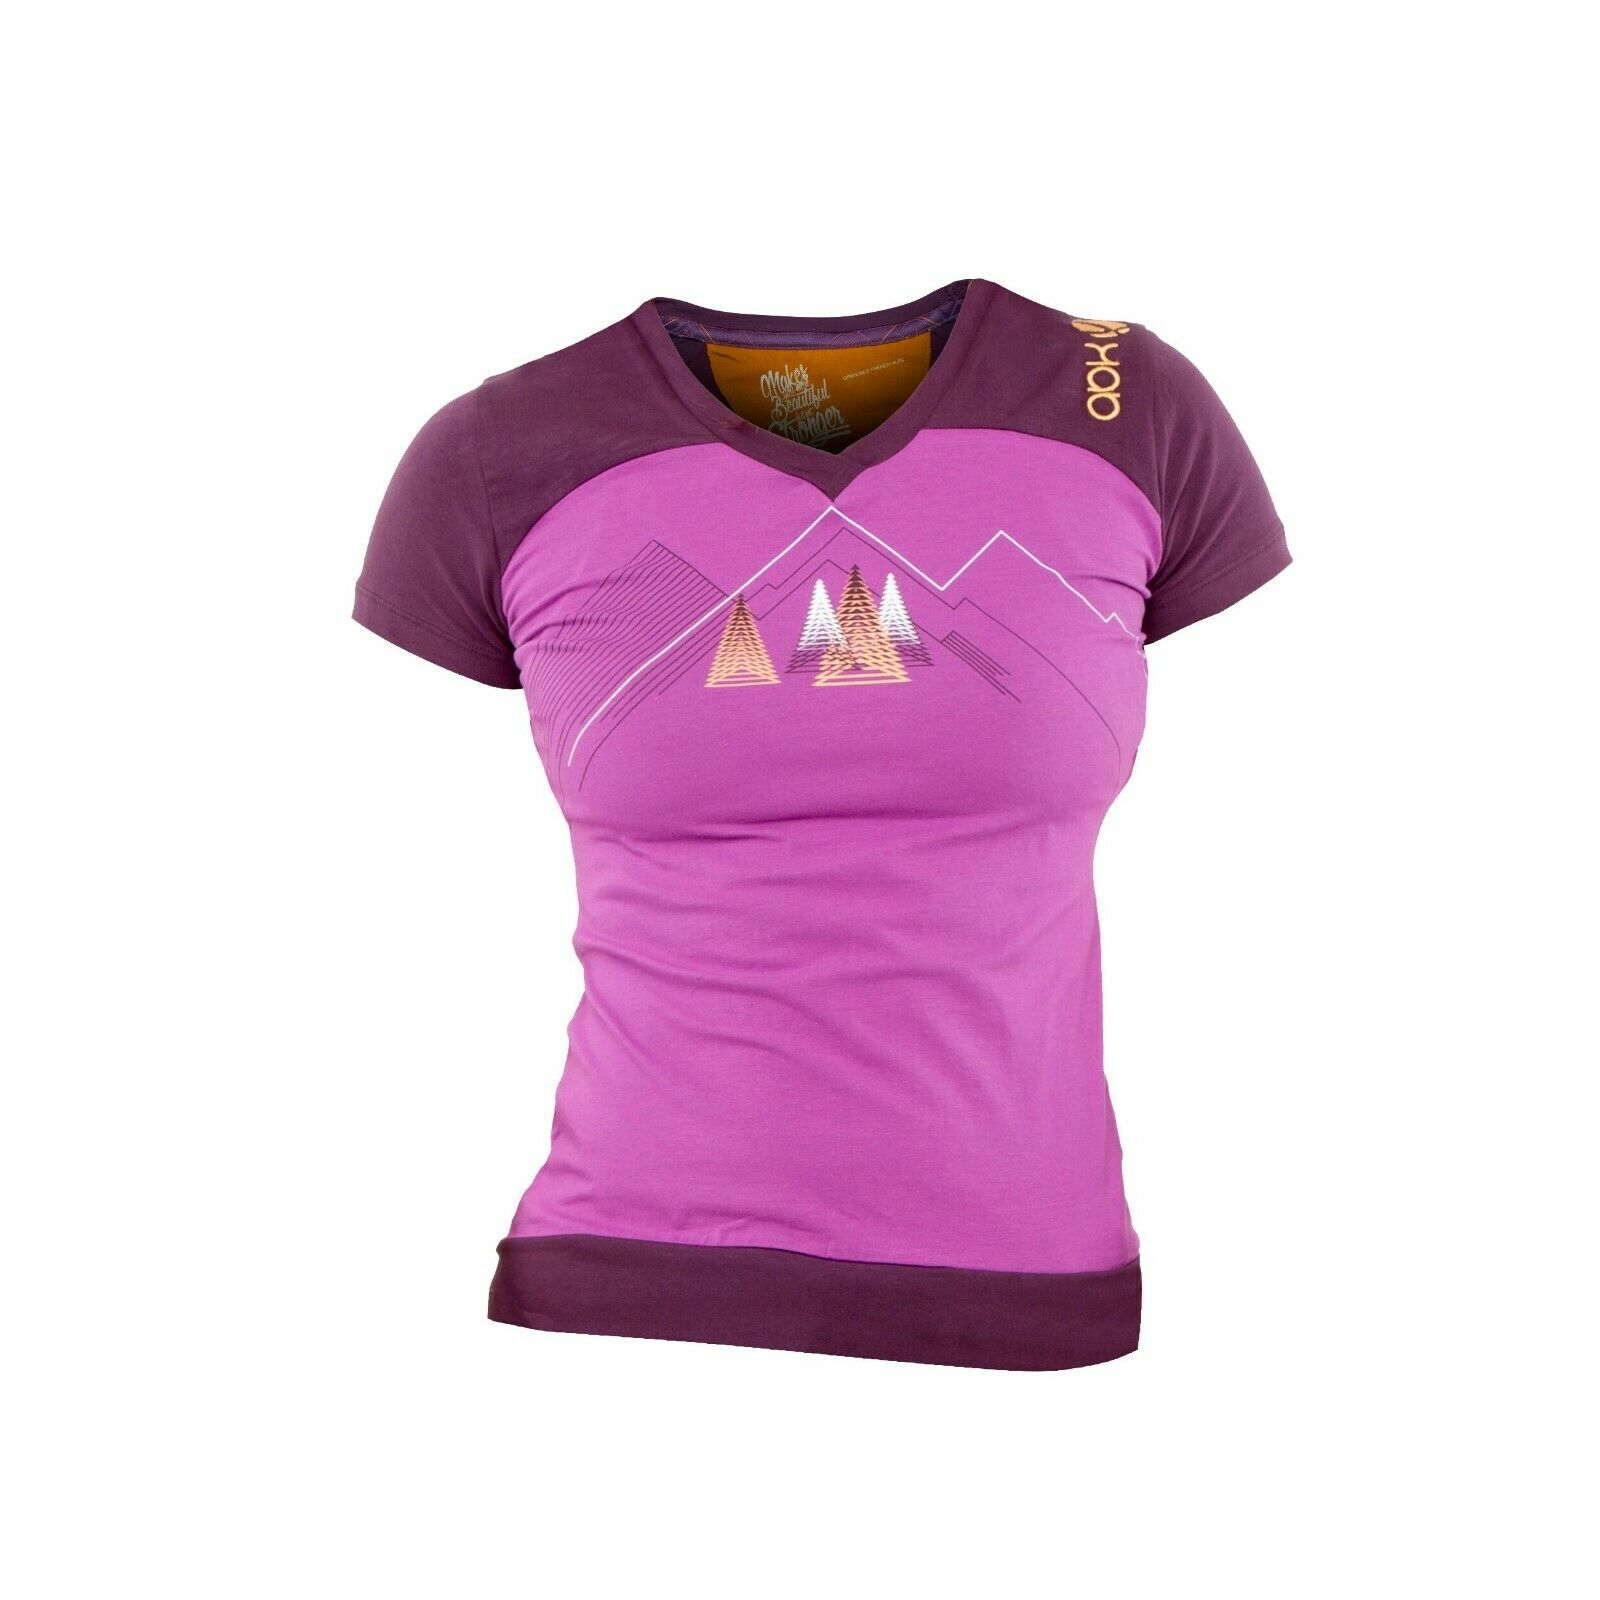 Abk Maud Tee Women Elastic T-Shirt for Women's  Deep purplec  authentic quality